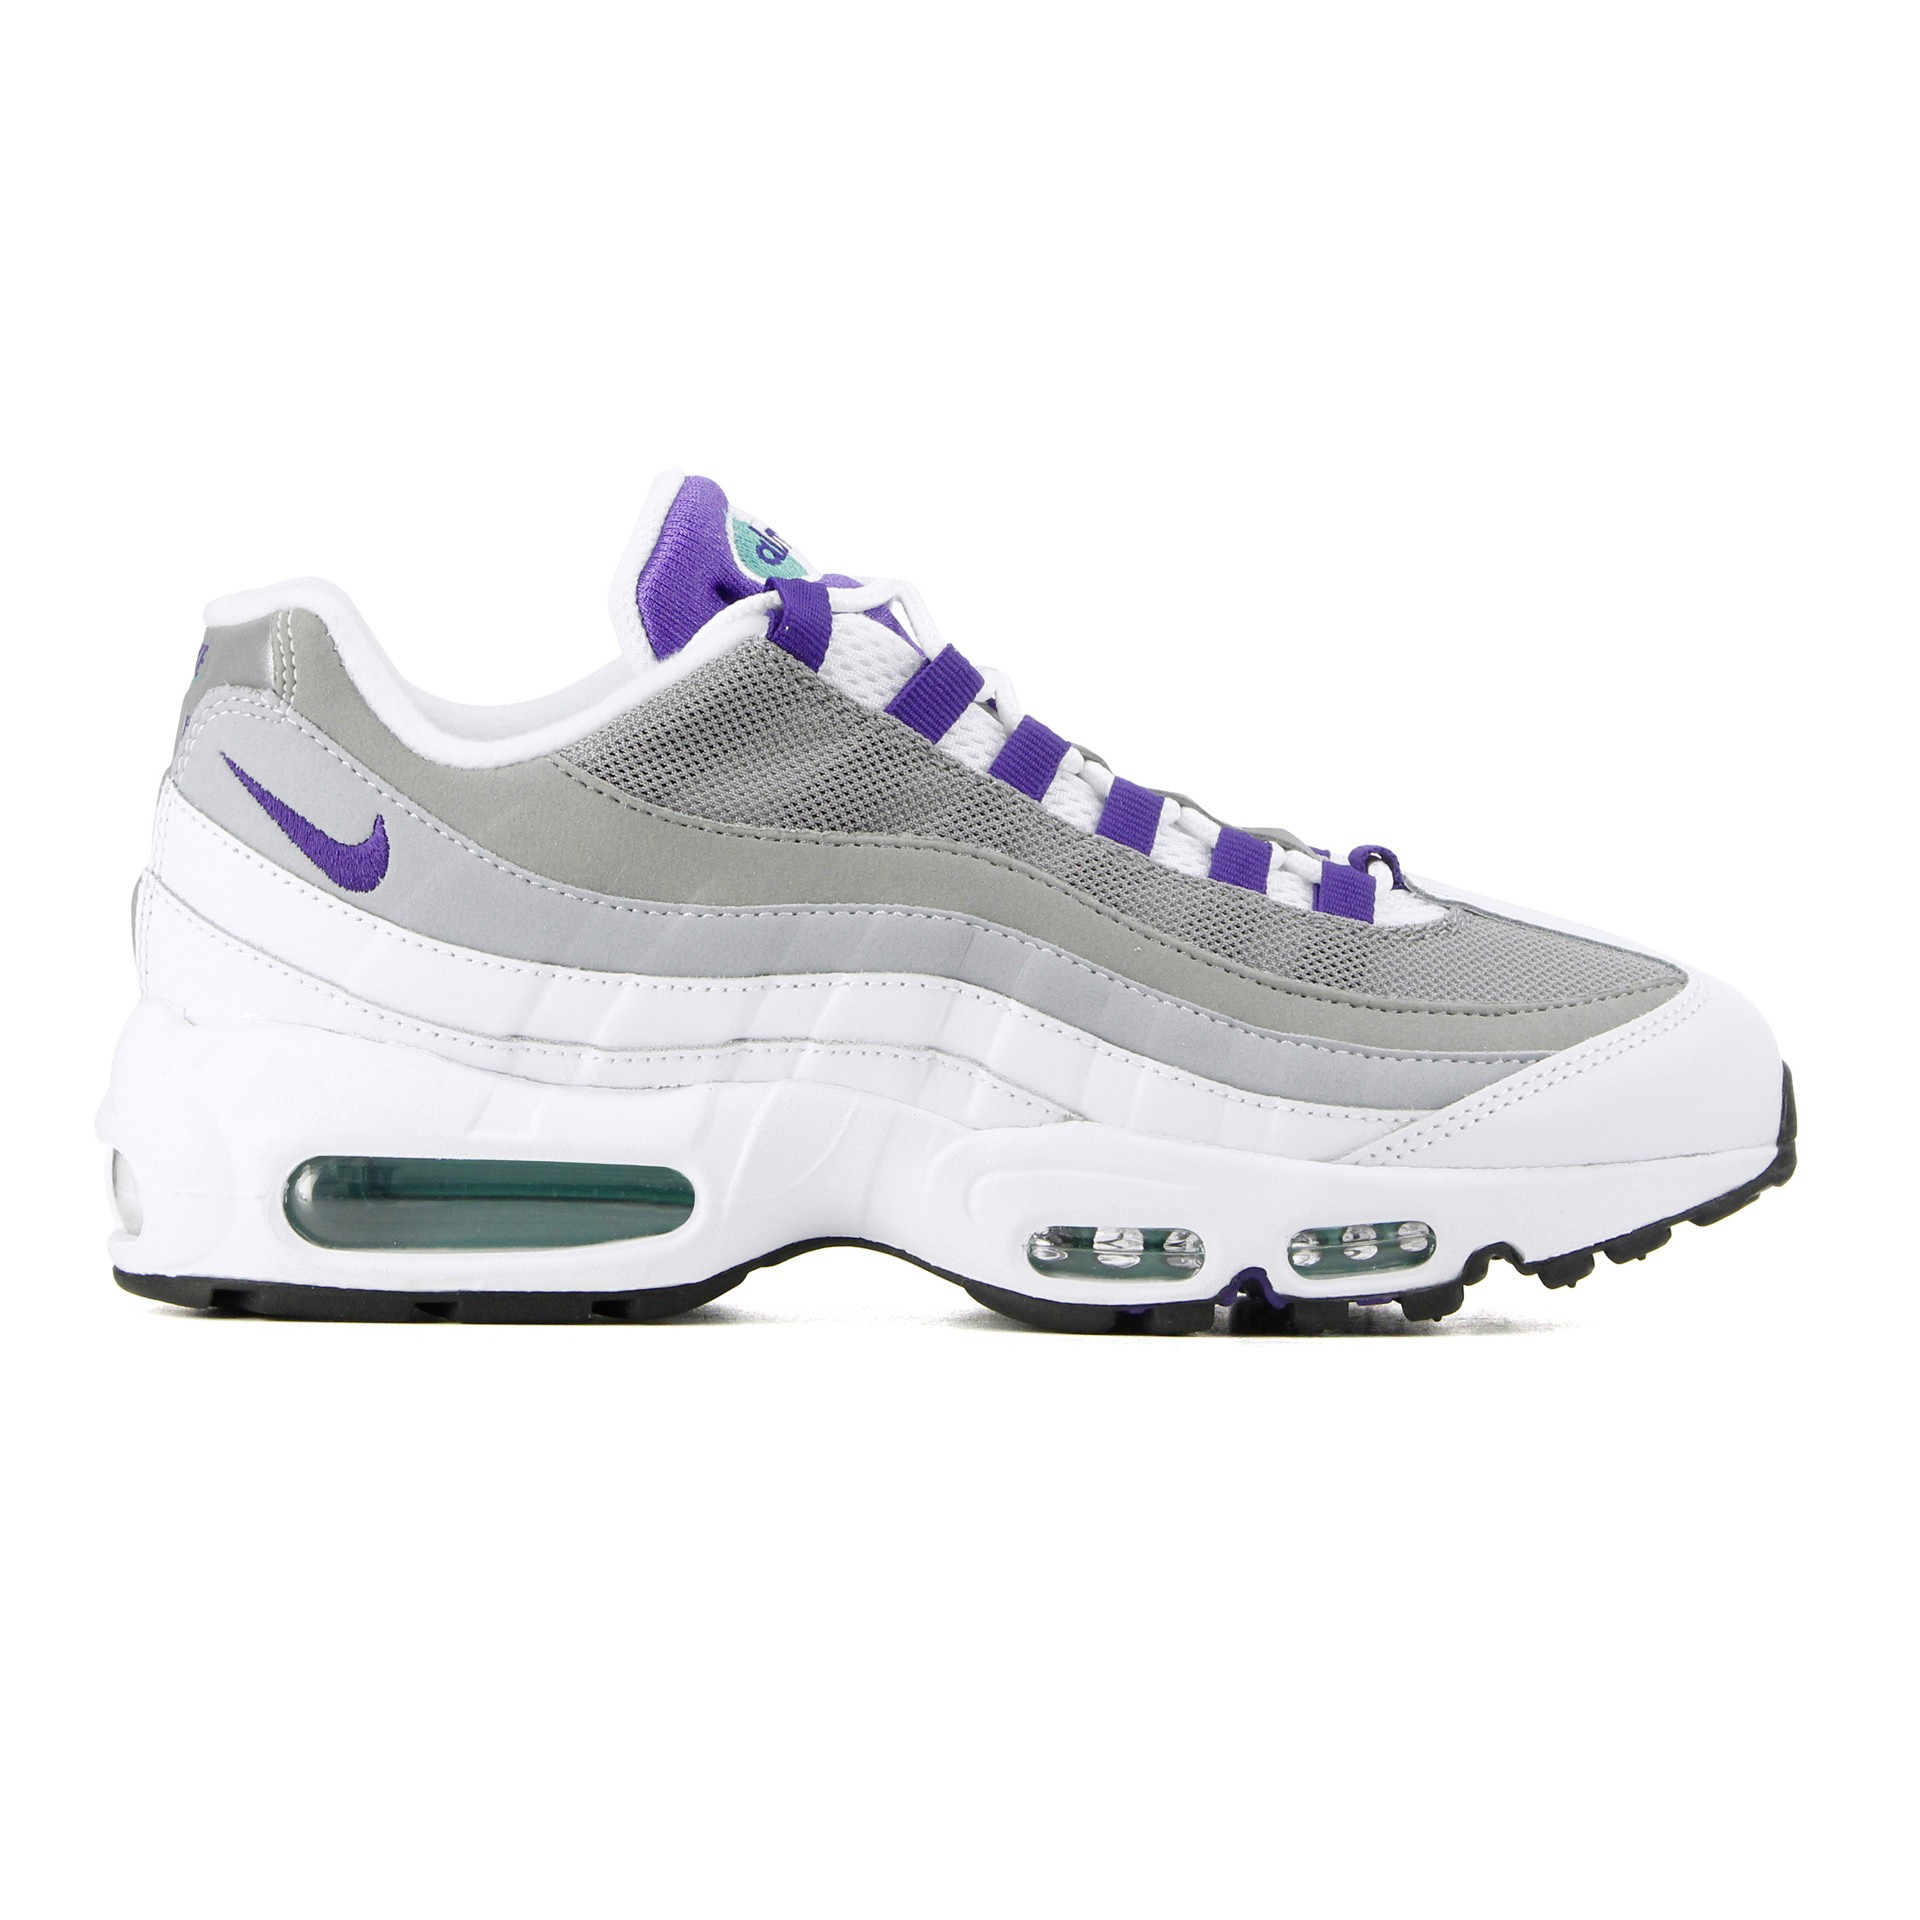 recognized brands free shipping sports shoes Acheter air max 95 homme courir pas cher